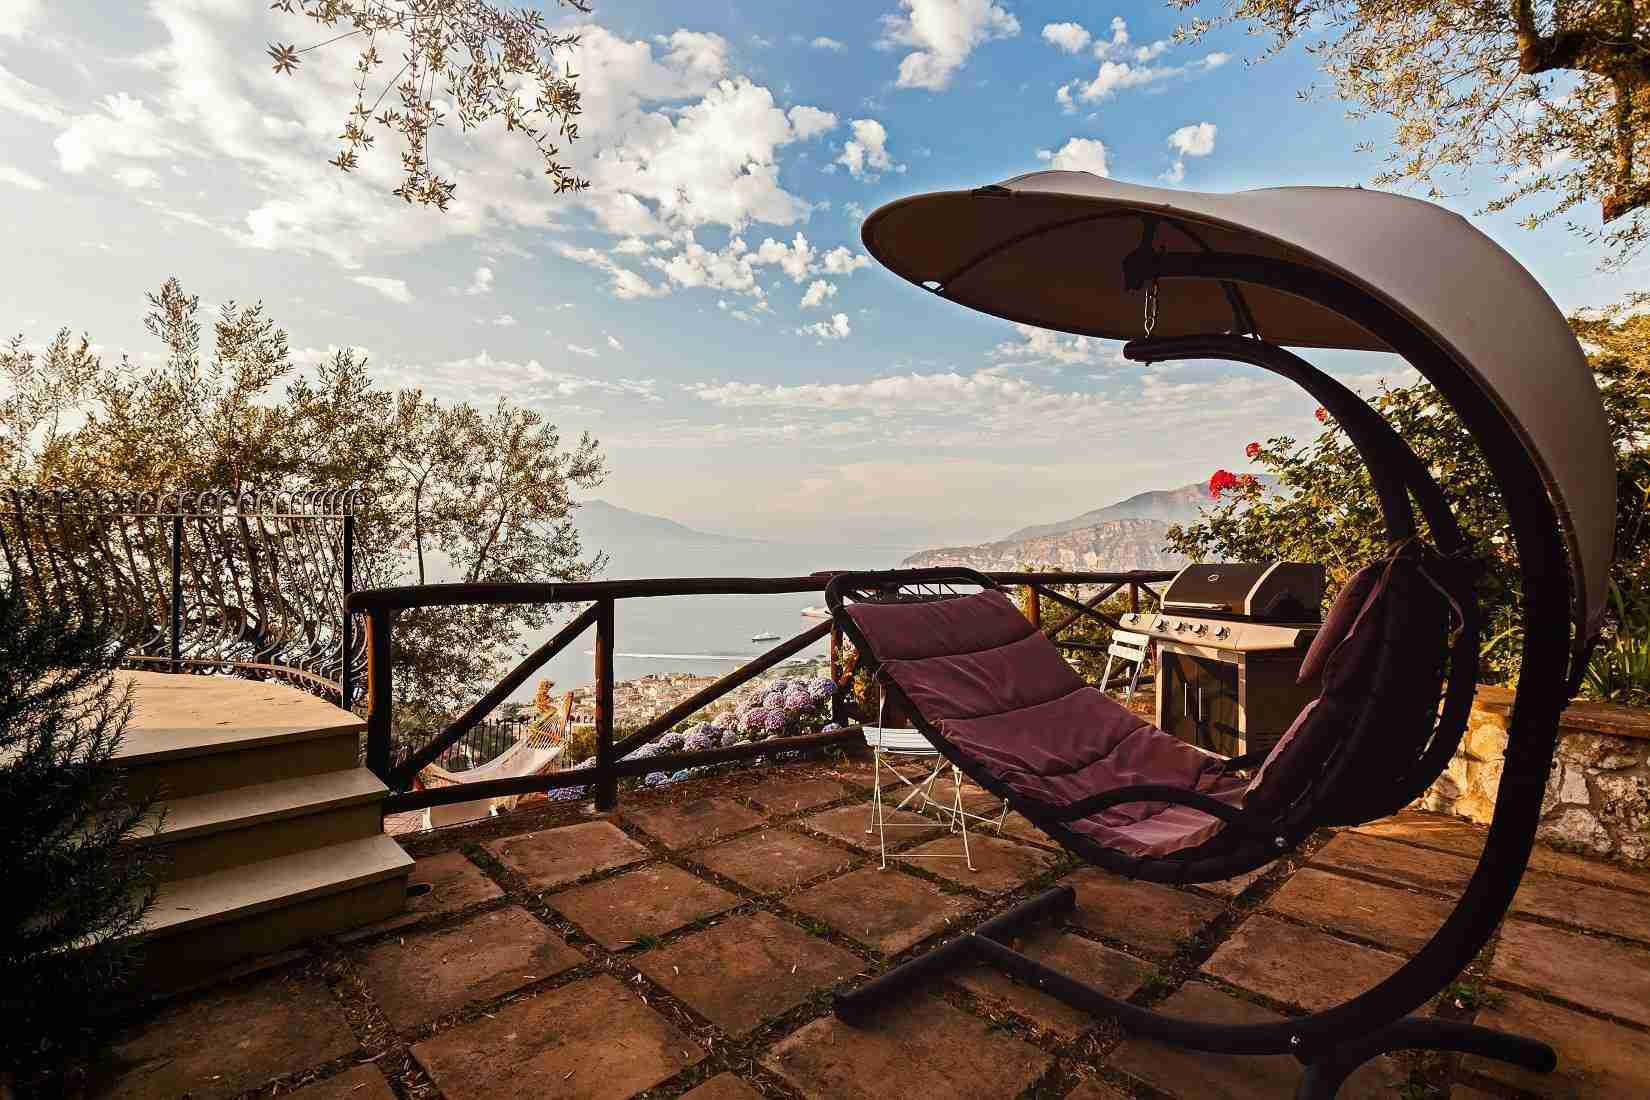 37 Turchese relax with a view